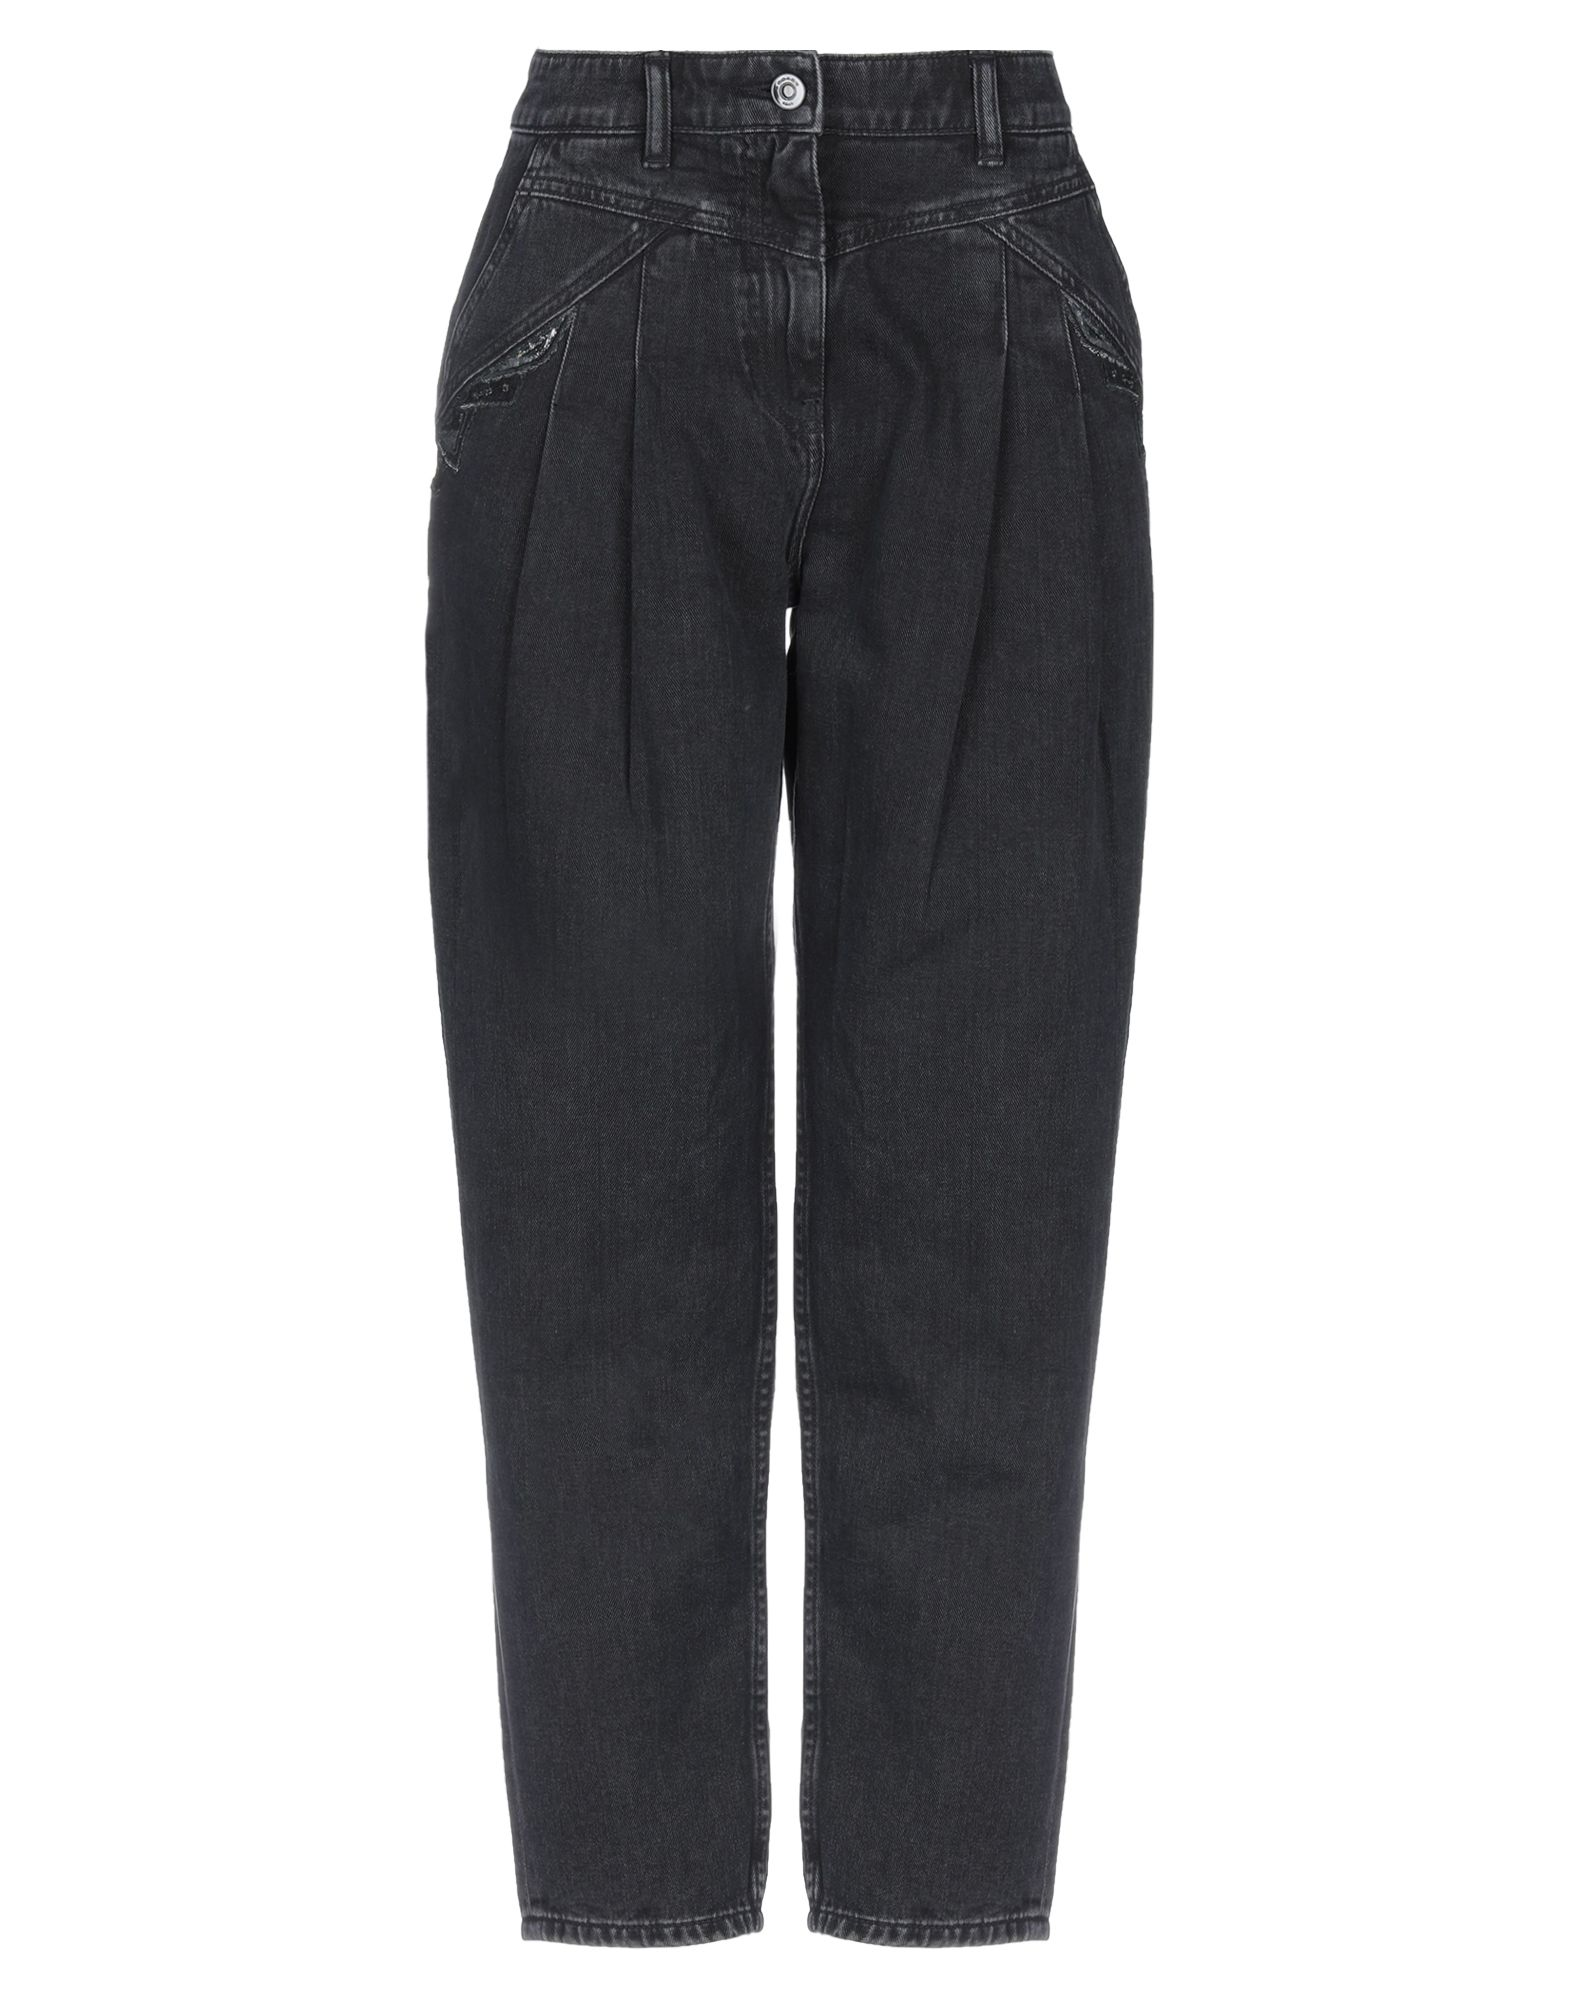 COACH Jeans. denim, embroidered detailing, darts, solid color, colored wash, high waisted, front closure, button, zip, multipockets. 100% Cotton